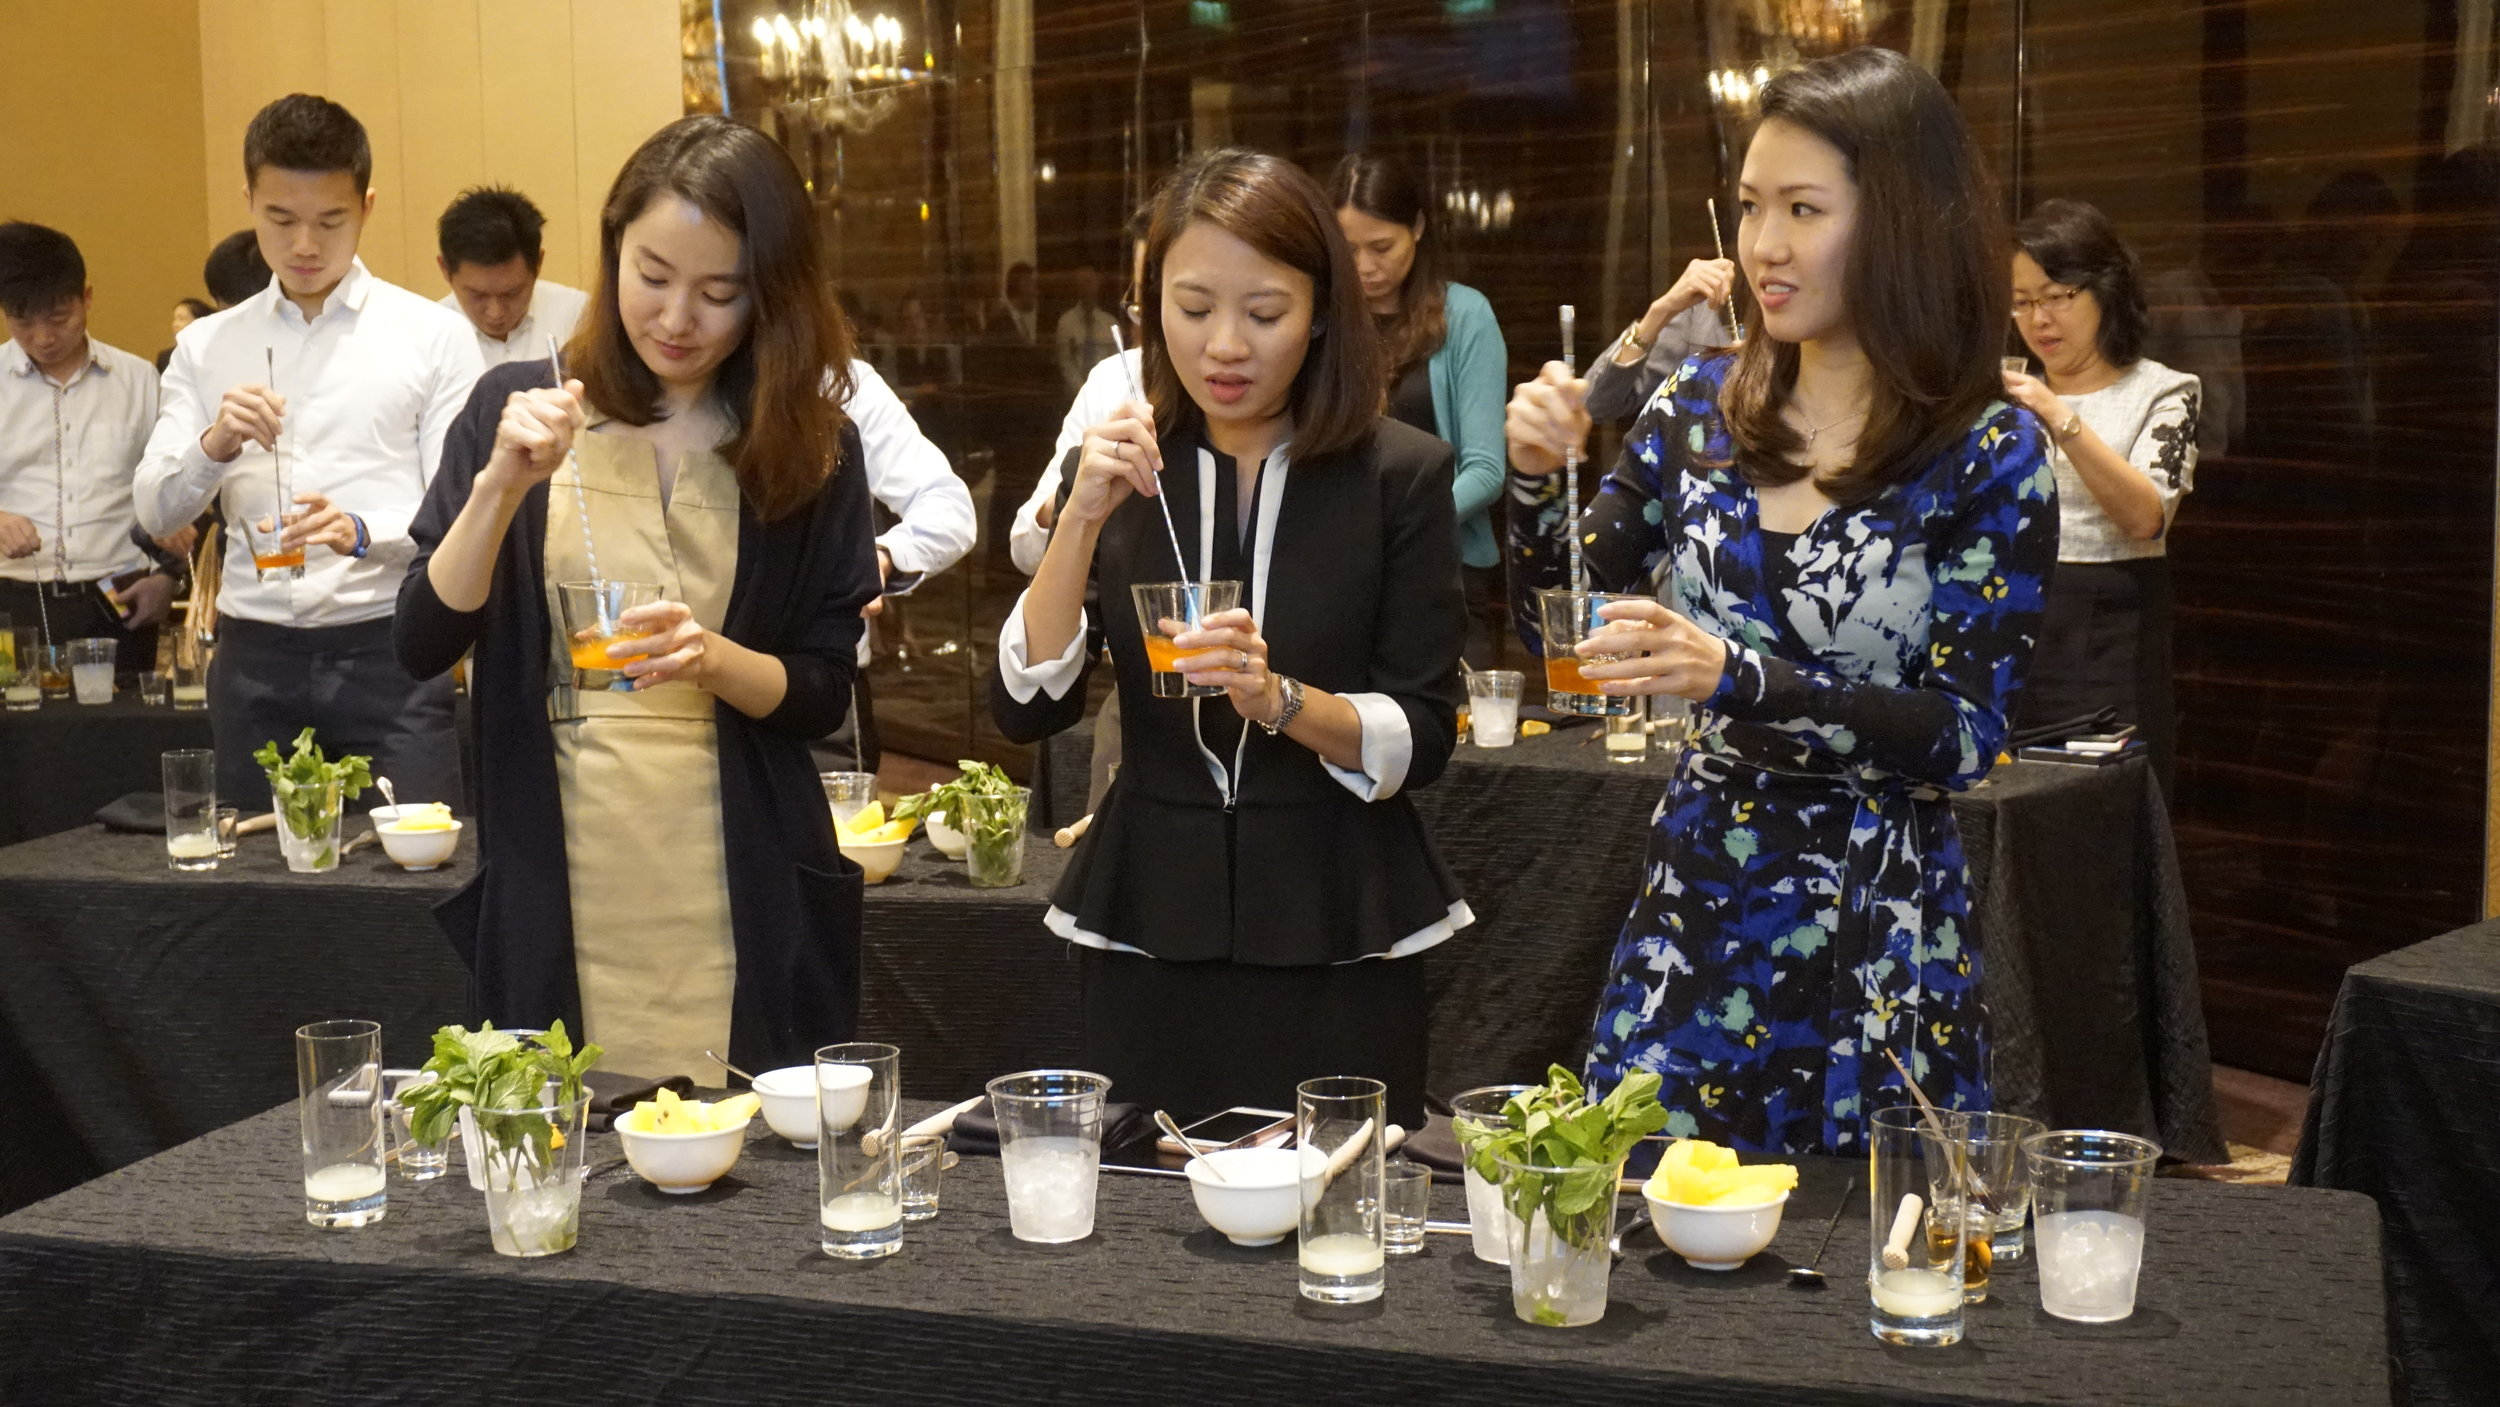 StRegis_Scholar_Mixology_Workshop_0015.JPG